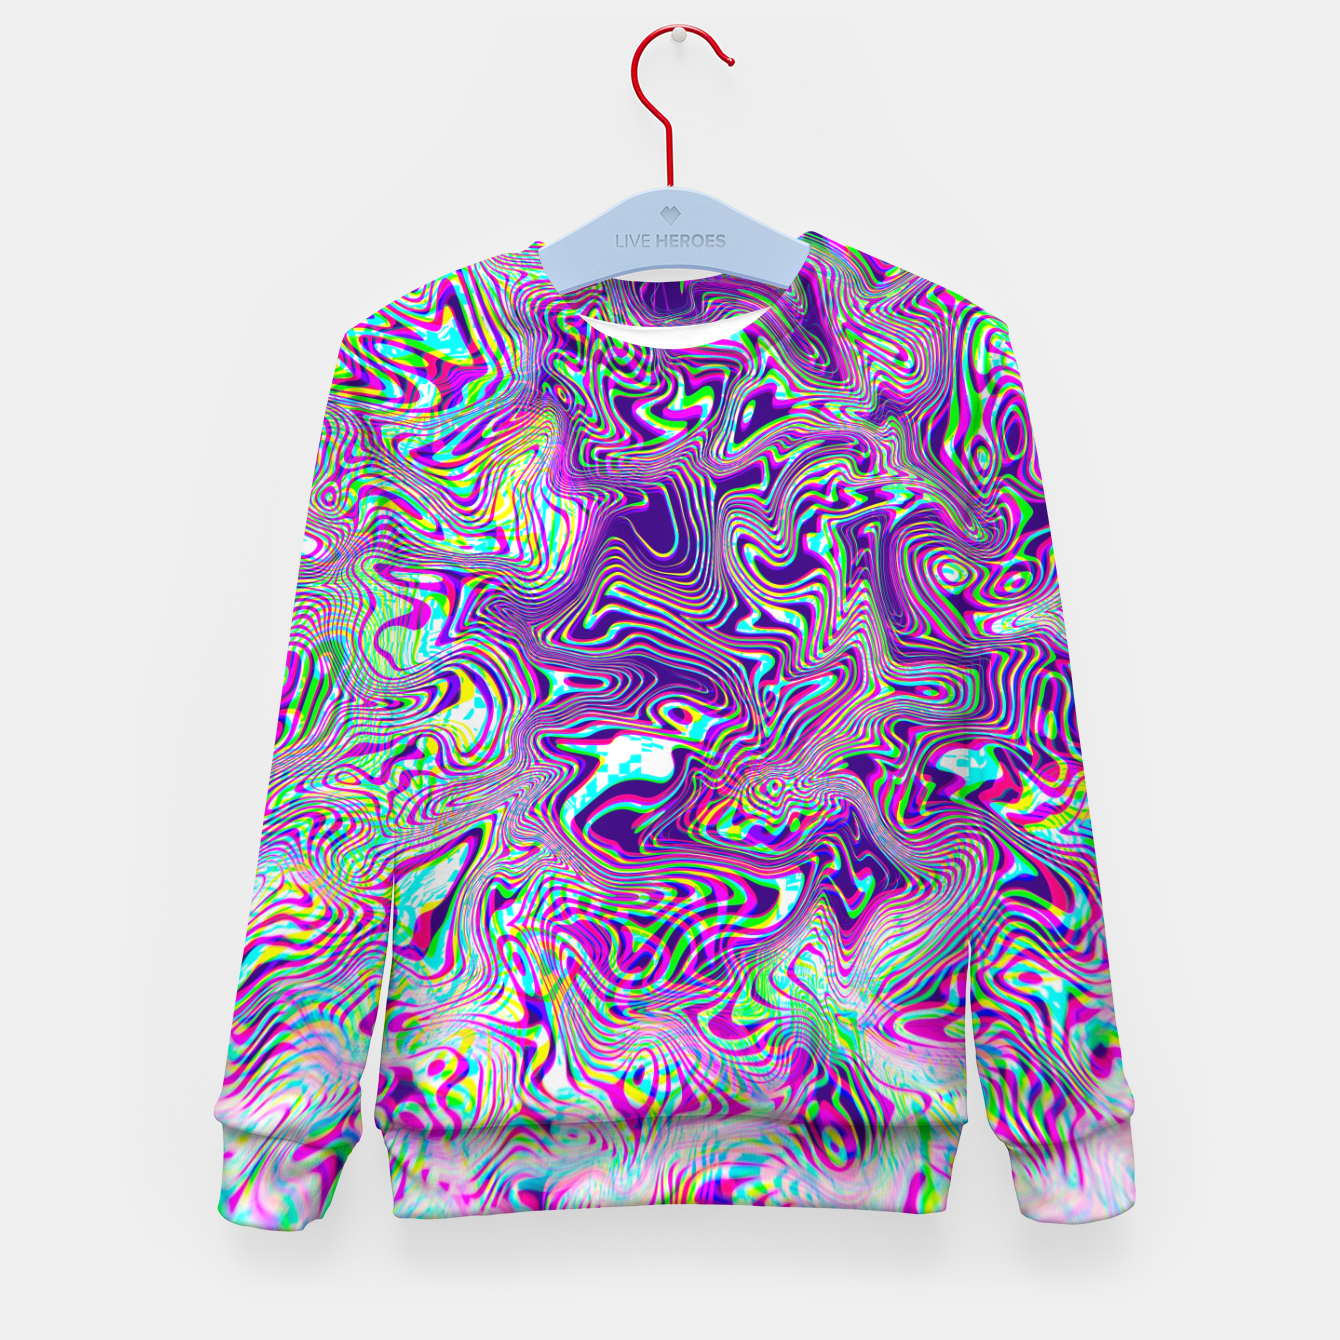 Zdjęcie Dope Glitch Waves Kid's sweater - Live Heroes